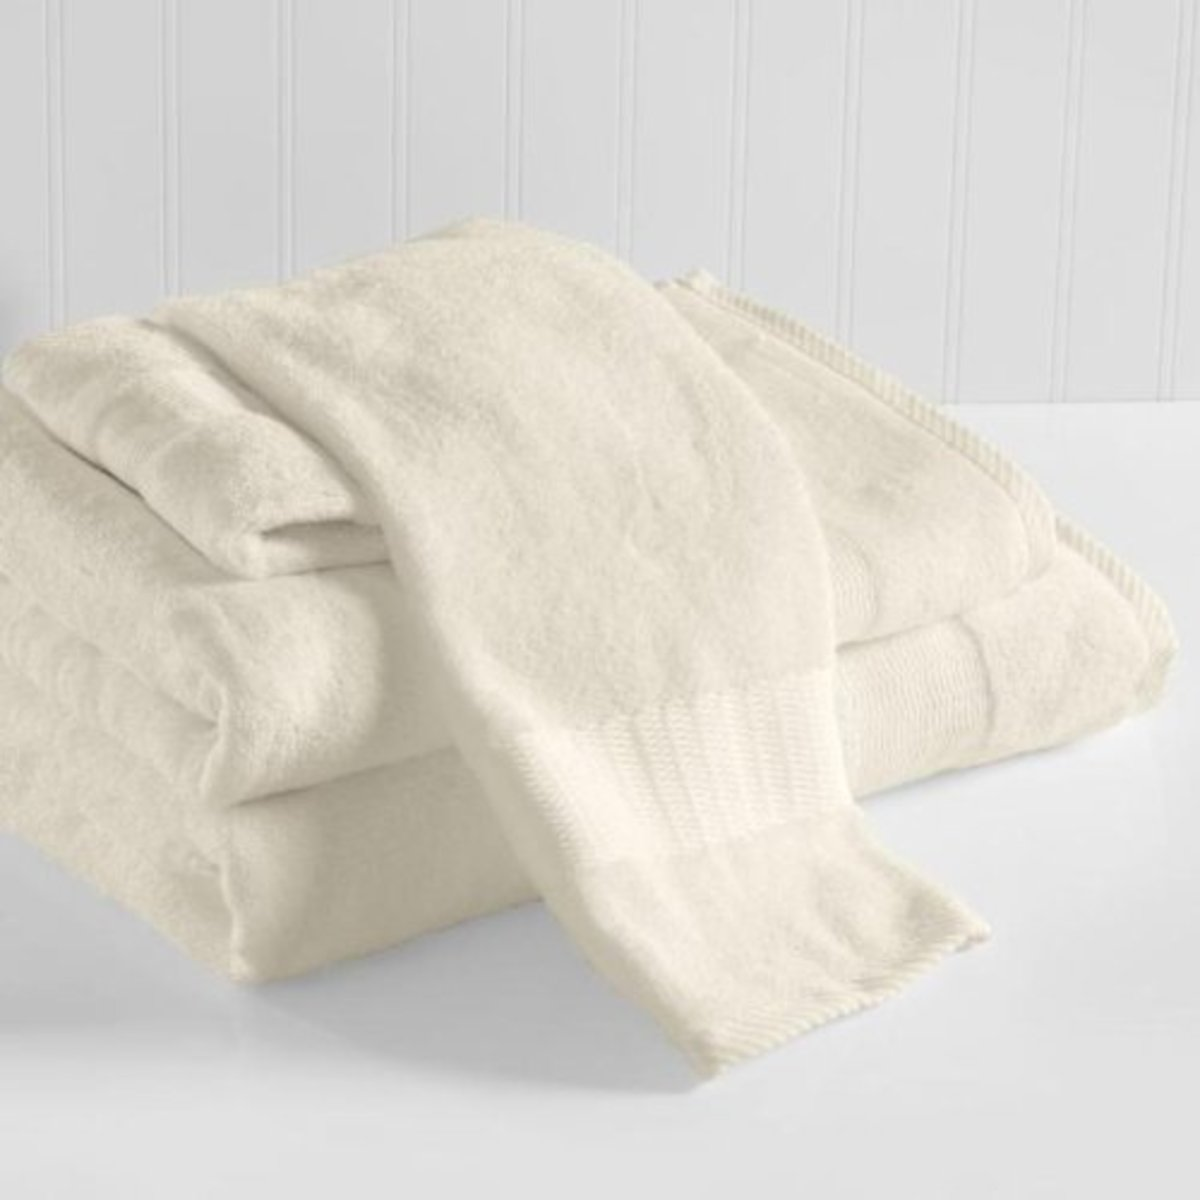 Brookstone is known for luxury. This towel, made from 35% Egyptian Cotton and 65% Bamboo Rayon, is both comfortable and durable.